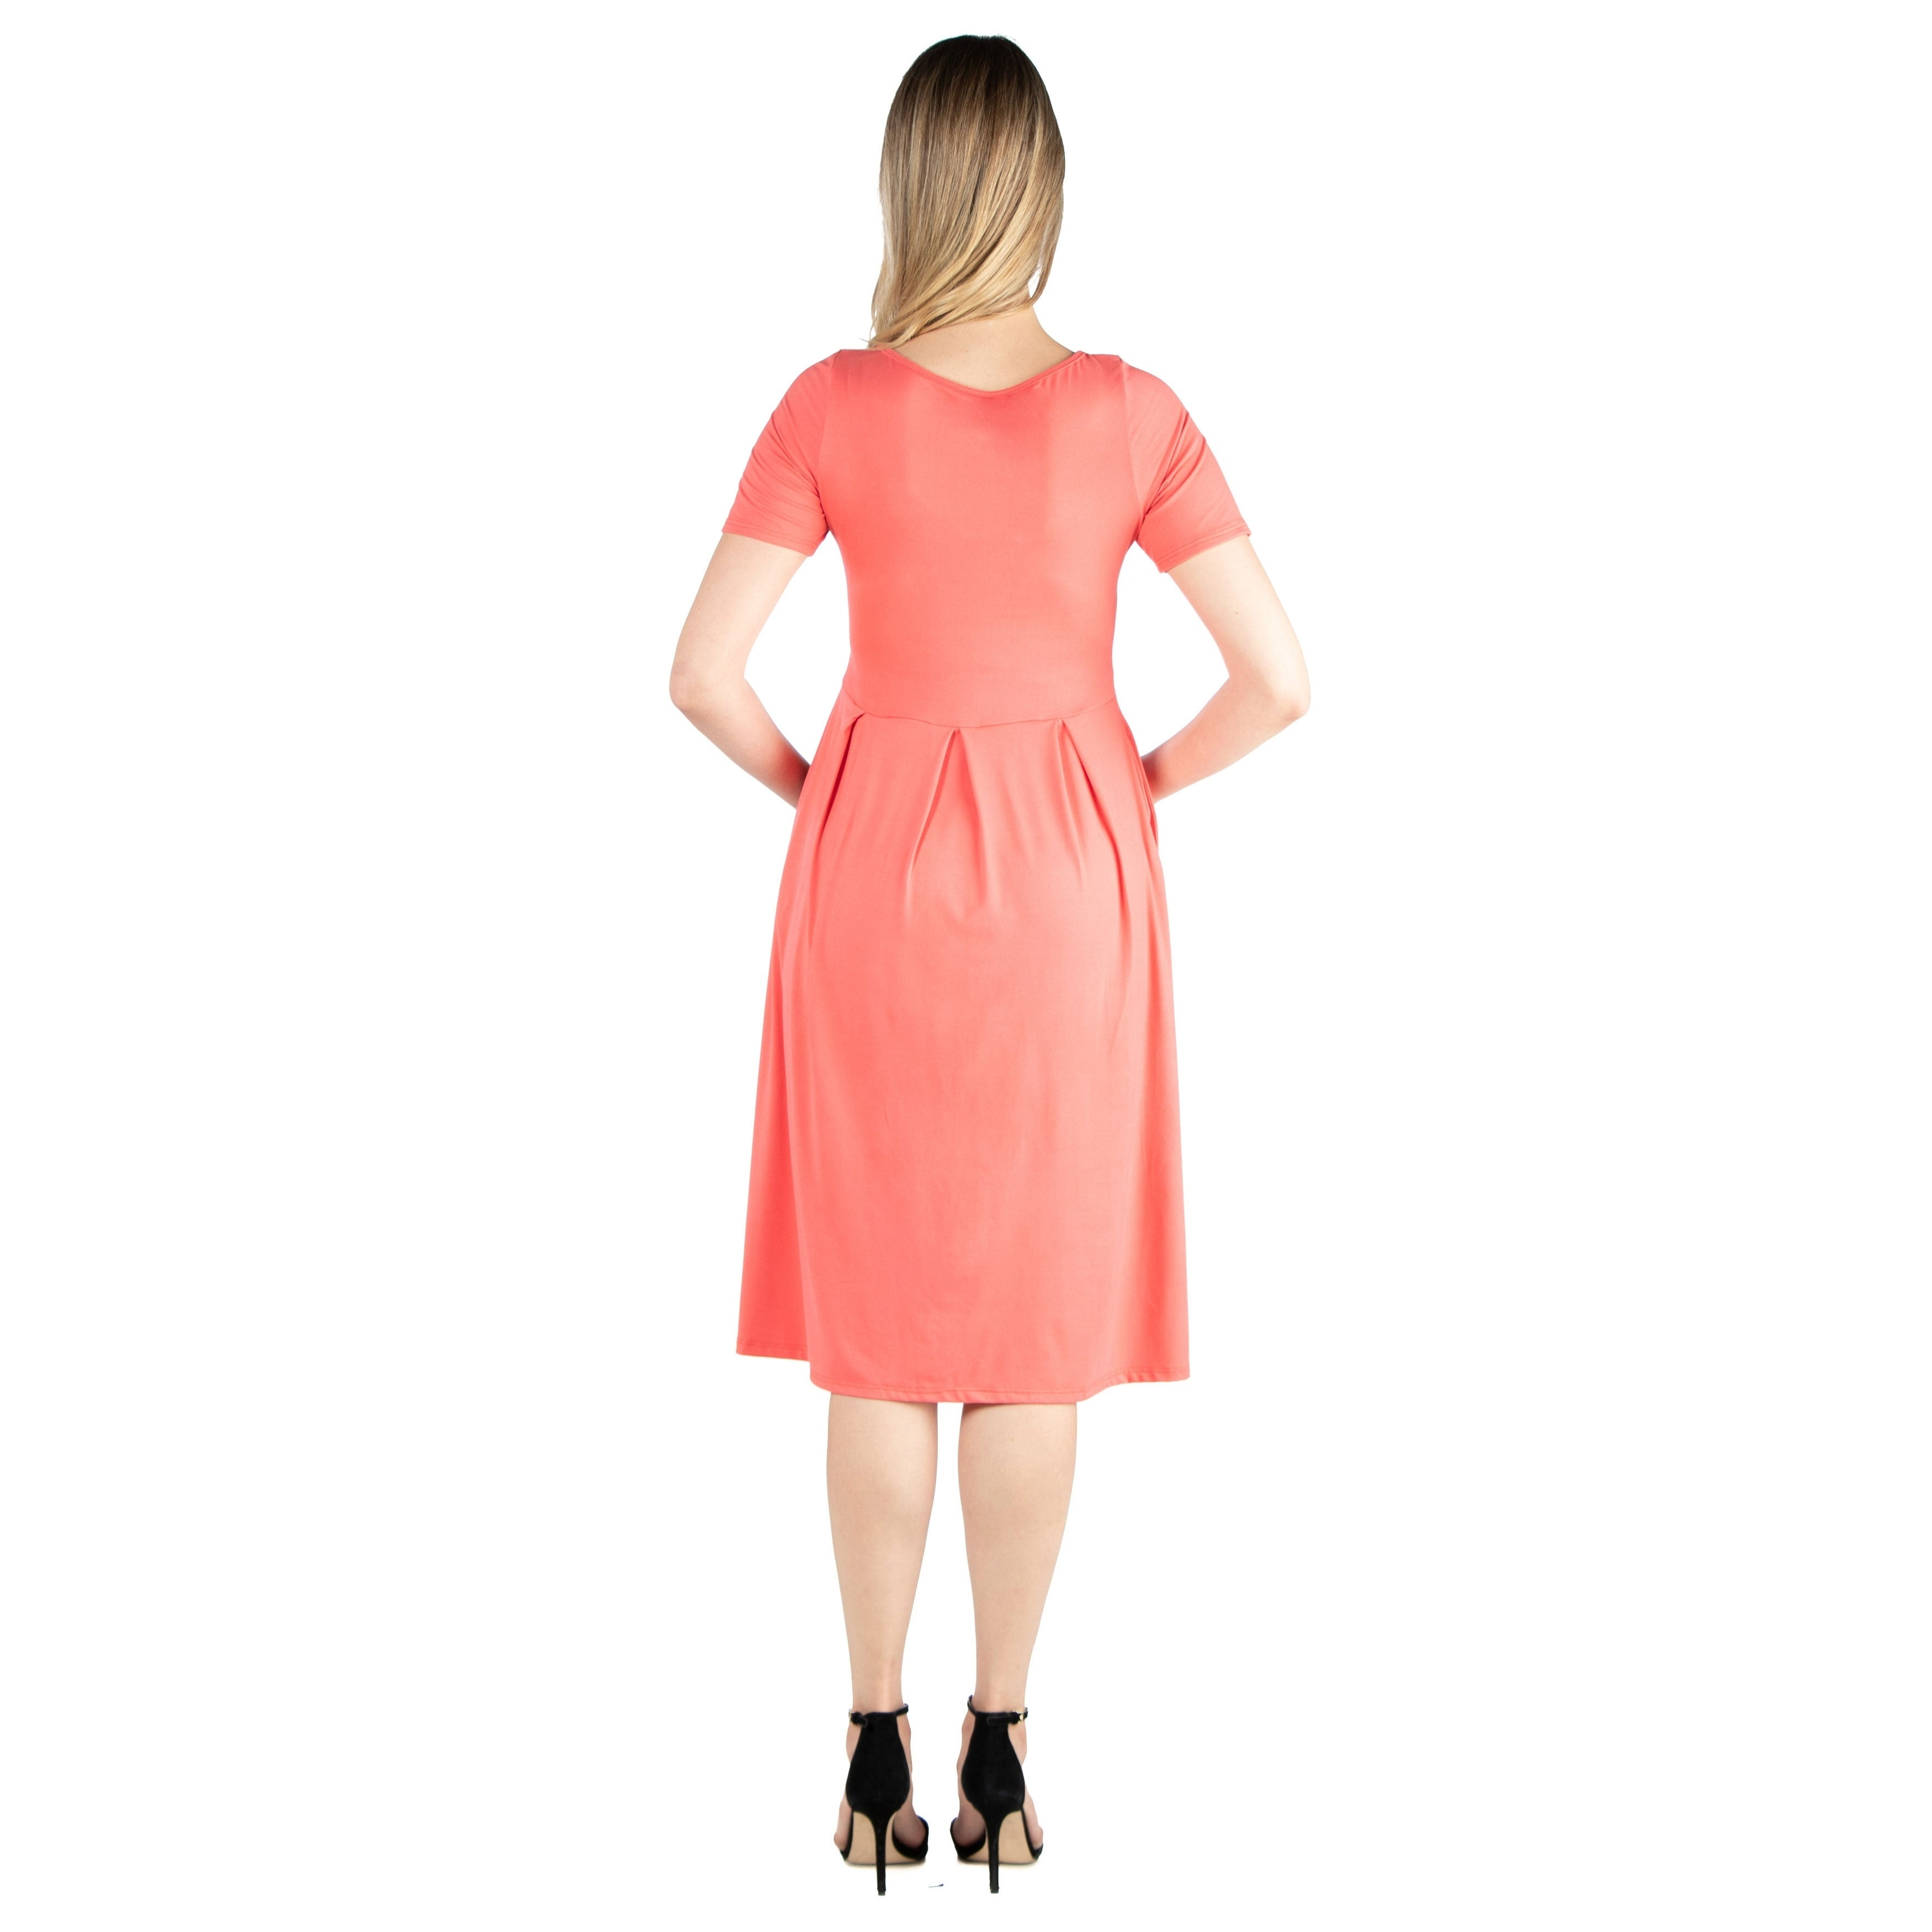 fecf735d460 Shop 24seven Comfort Apparel Short Sleeve Maternity Midi Skater Dress With  Pockets - Free Shipping On Orders Over  45 - Overstock - 28003637